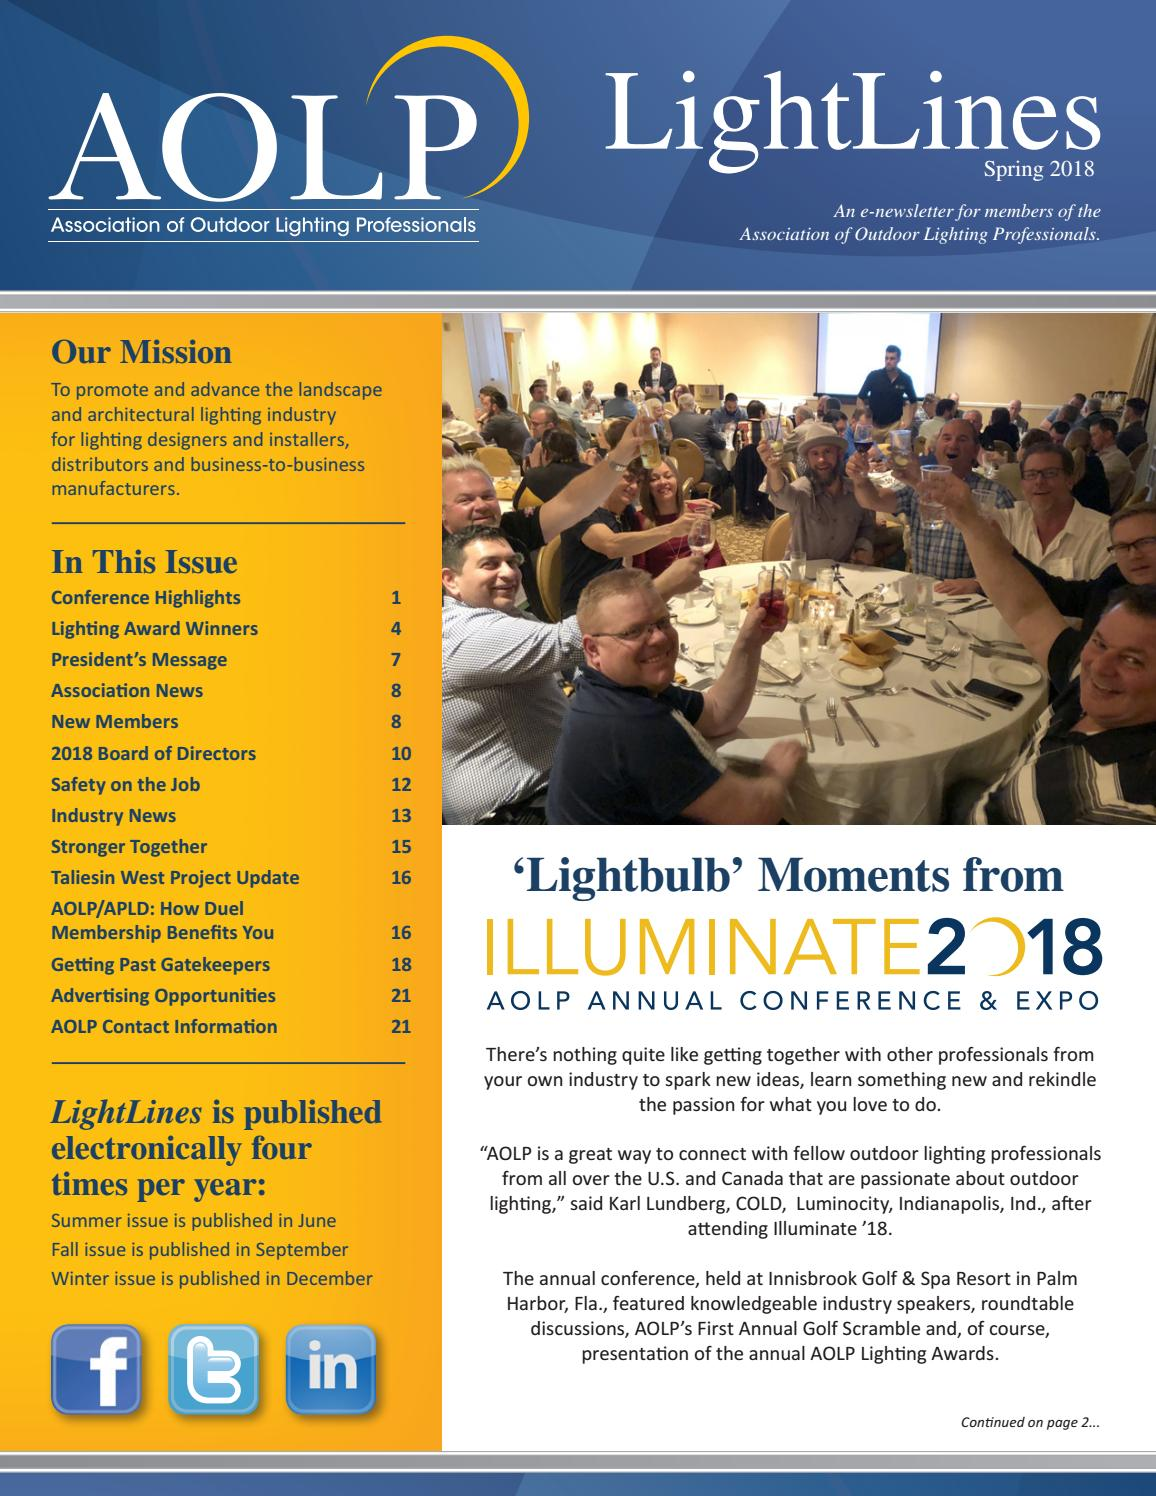 Aolp Lightlines 2018 Spring Issue By Ociation Of Outdoor